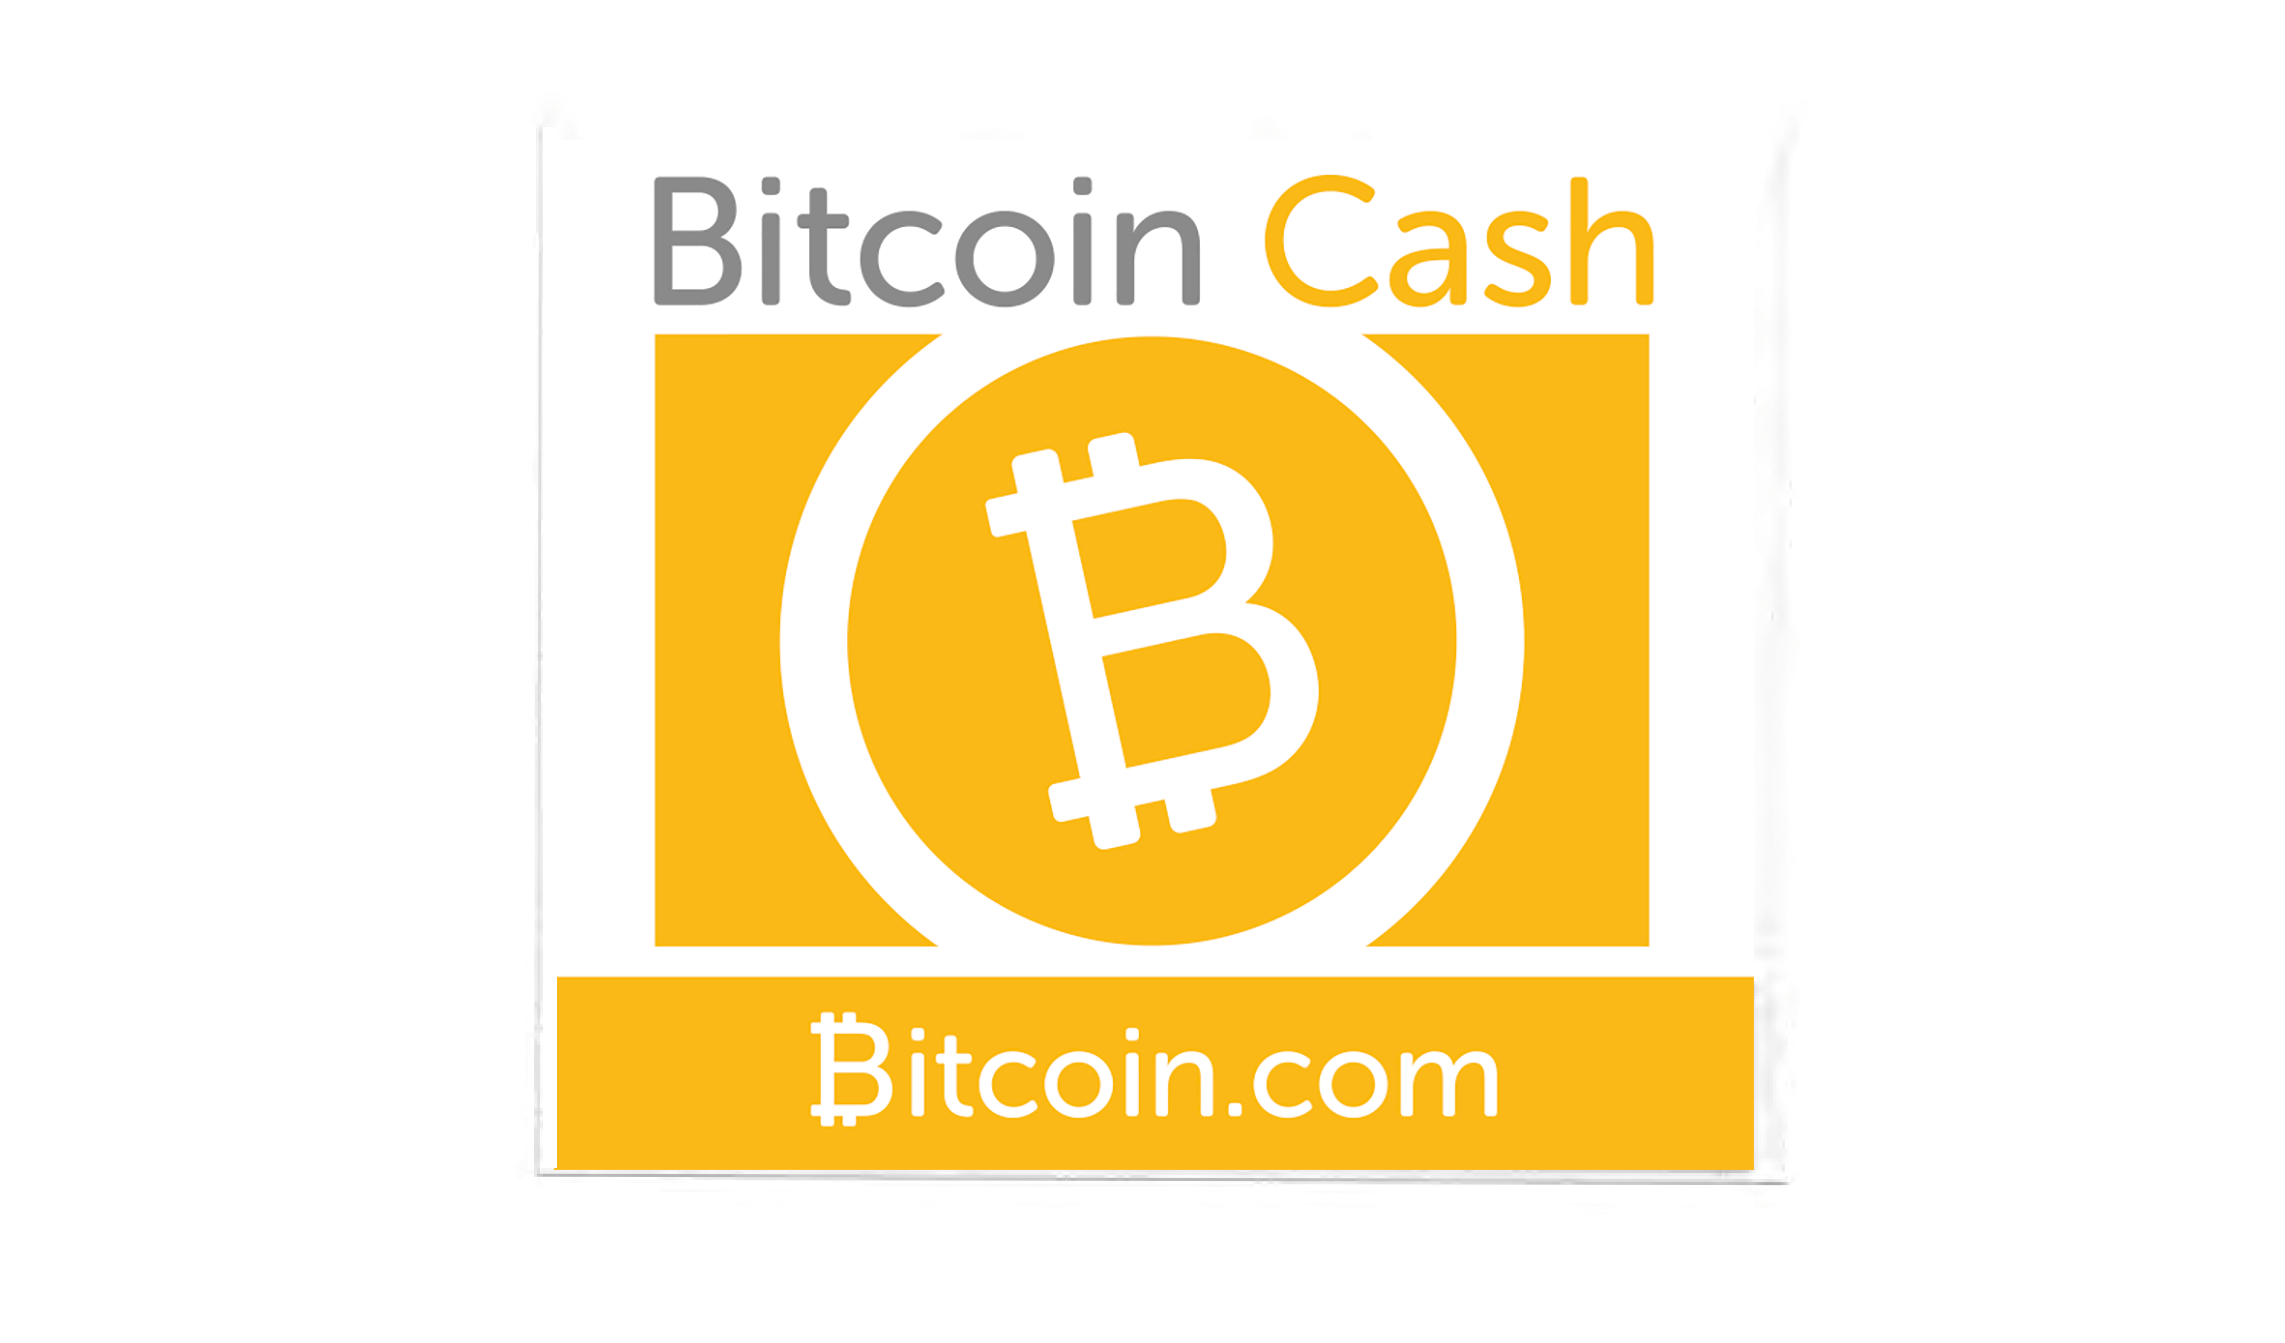 Bitcoin Cash Stickers (5 Pack)